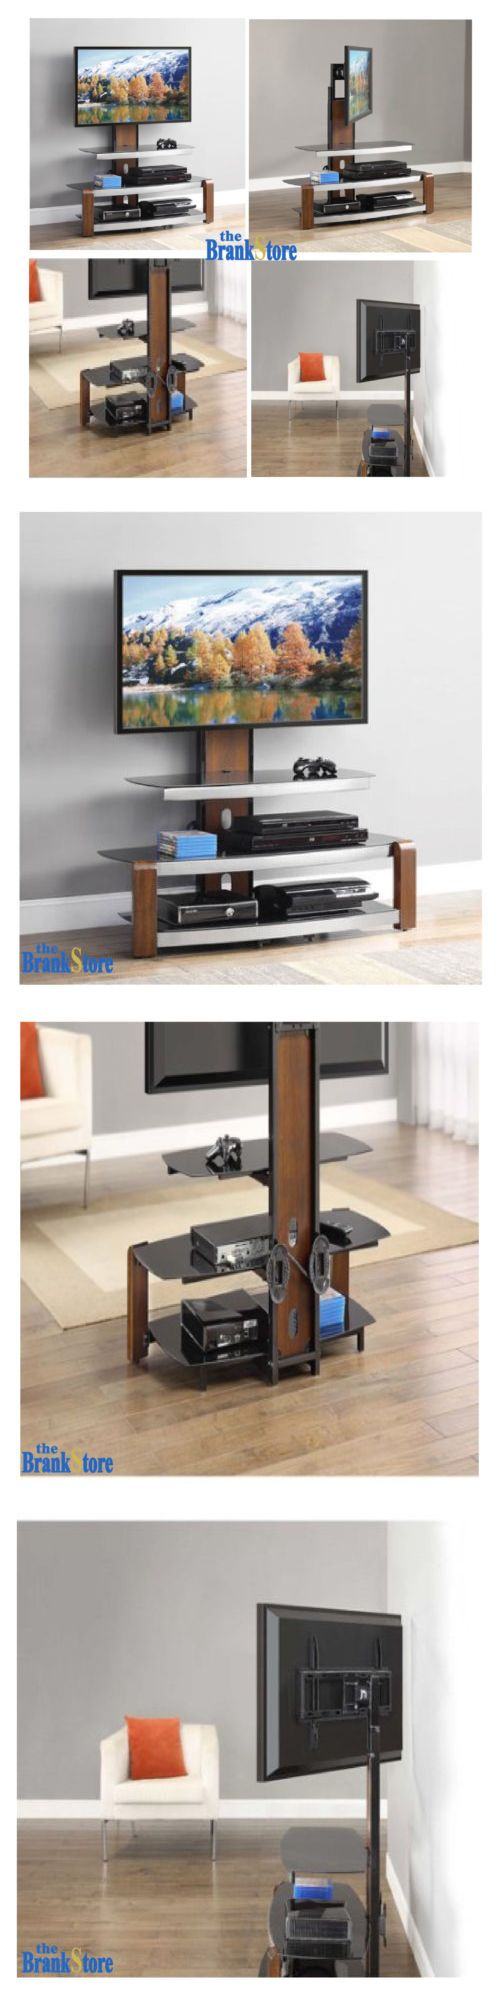 Entertainment Units TV Stands: Tv Stand With Mount Swinging Holder Home Entertainment Center Wood Glass Storage BUY IT NOW ONLY: $98.36